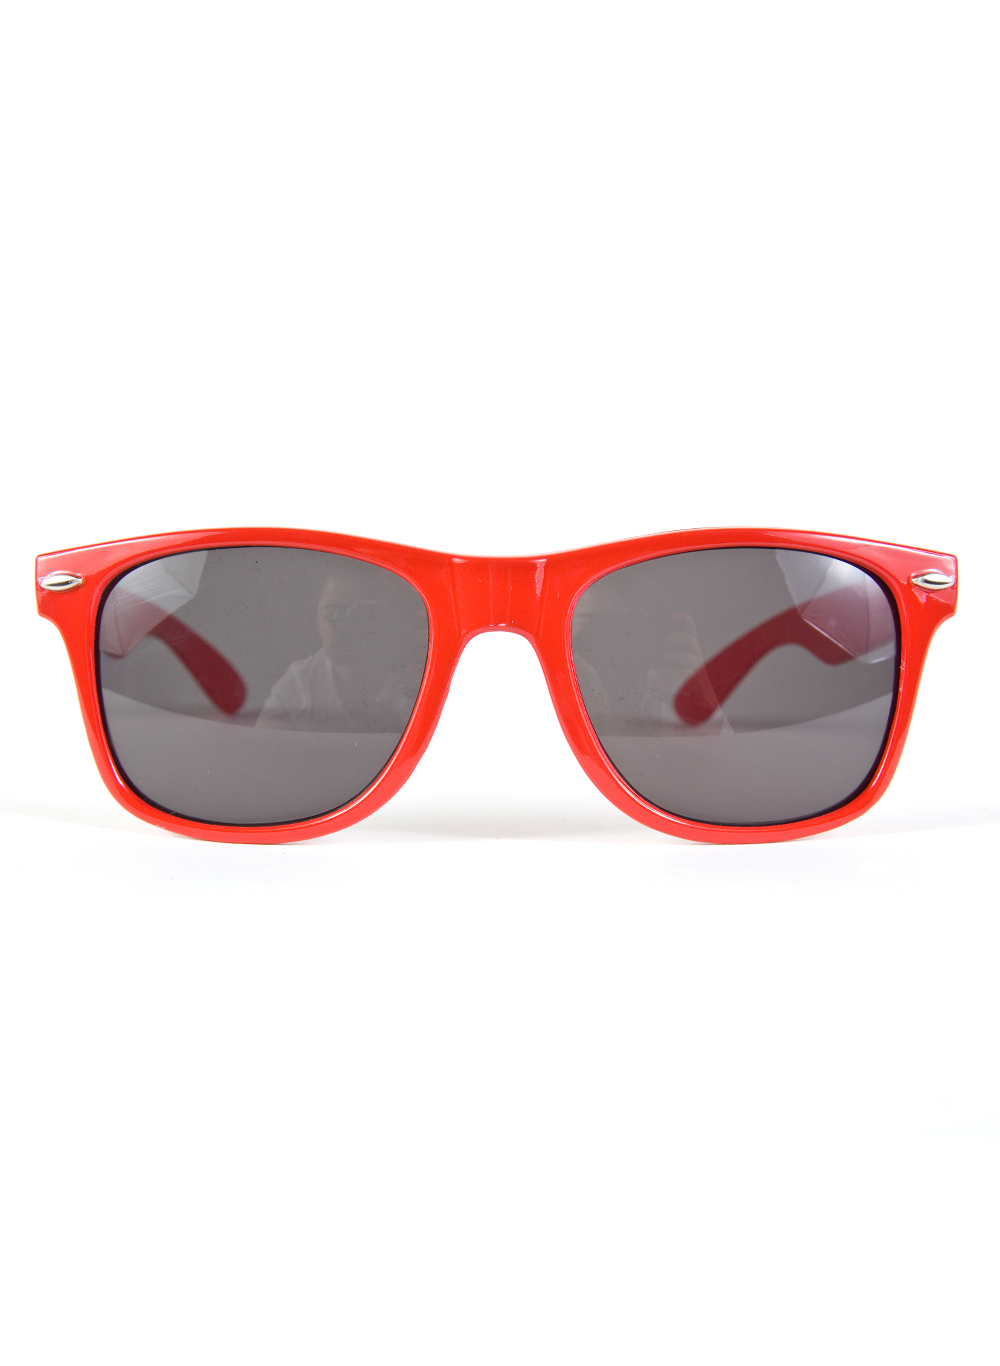 Cyrillic Logo Sunglasses